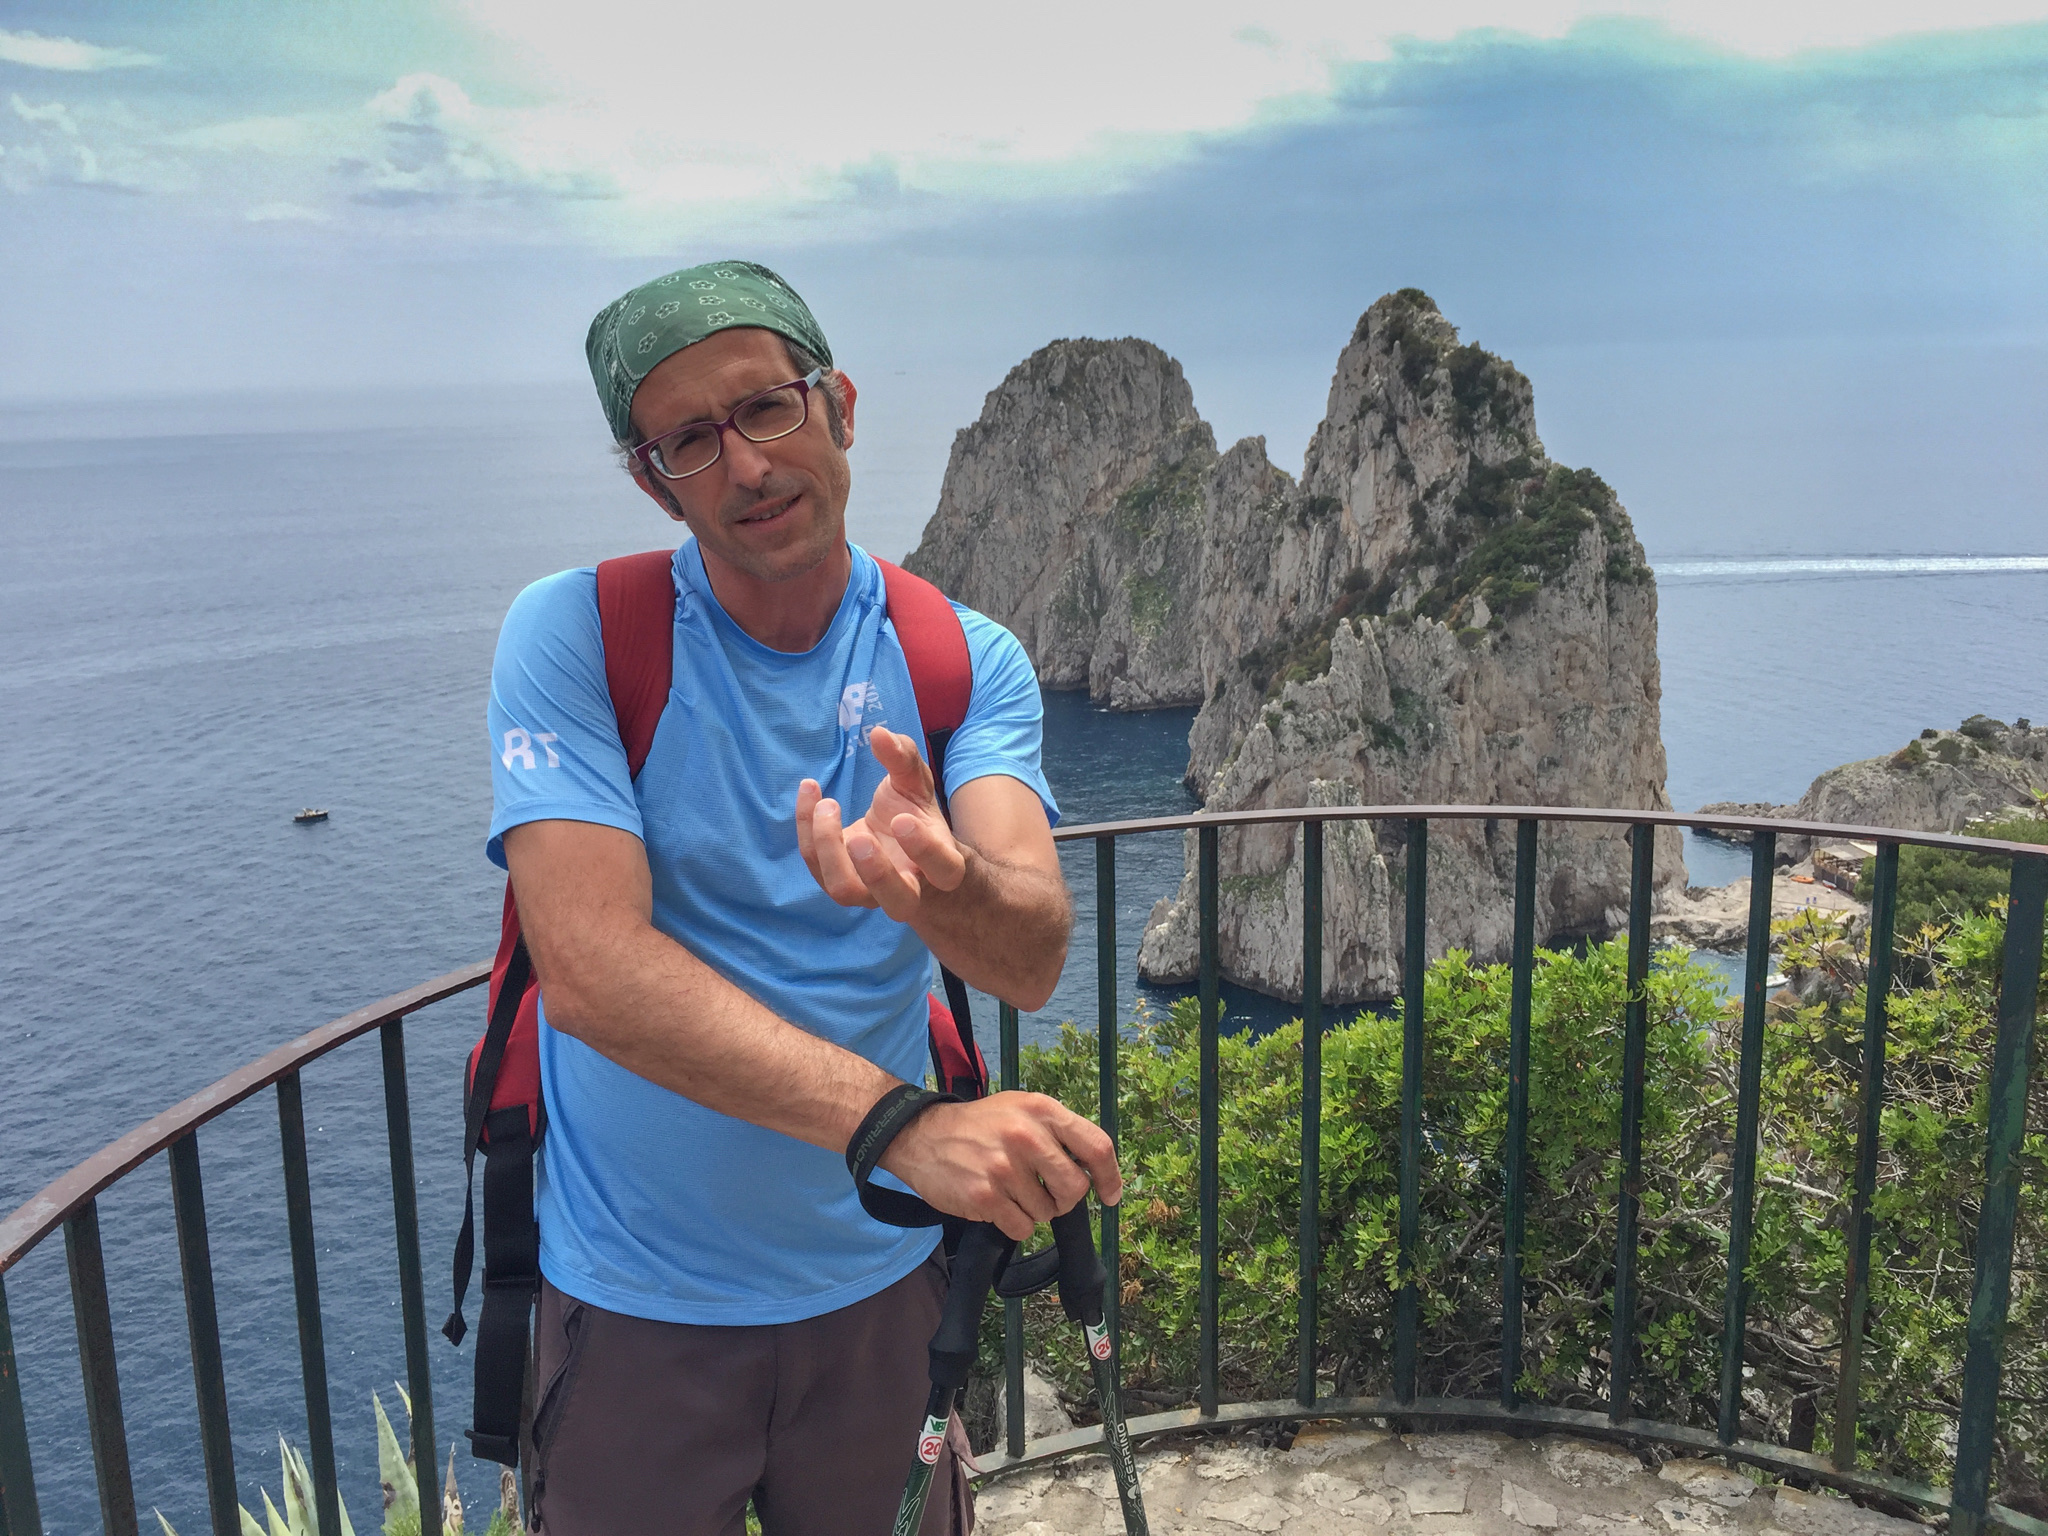 Mauro's Top Tips for Independent Exploration on the Amalfi Coast 4